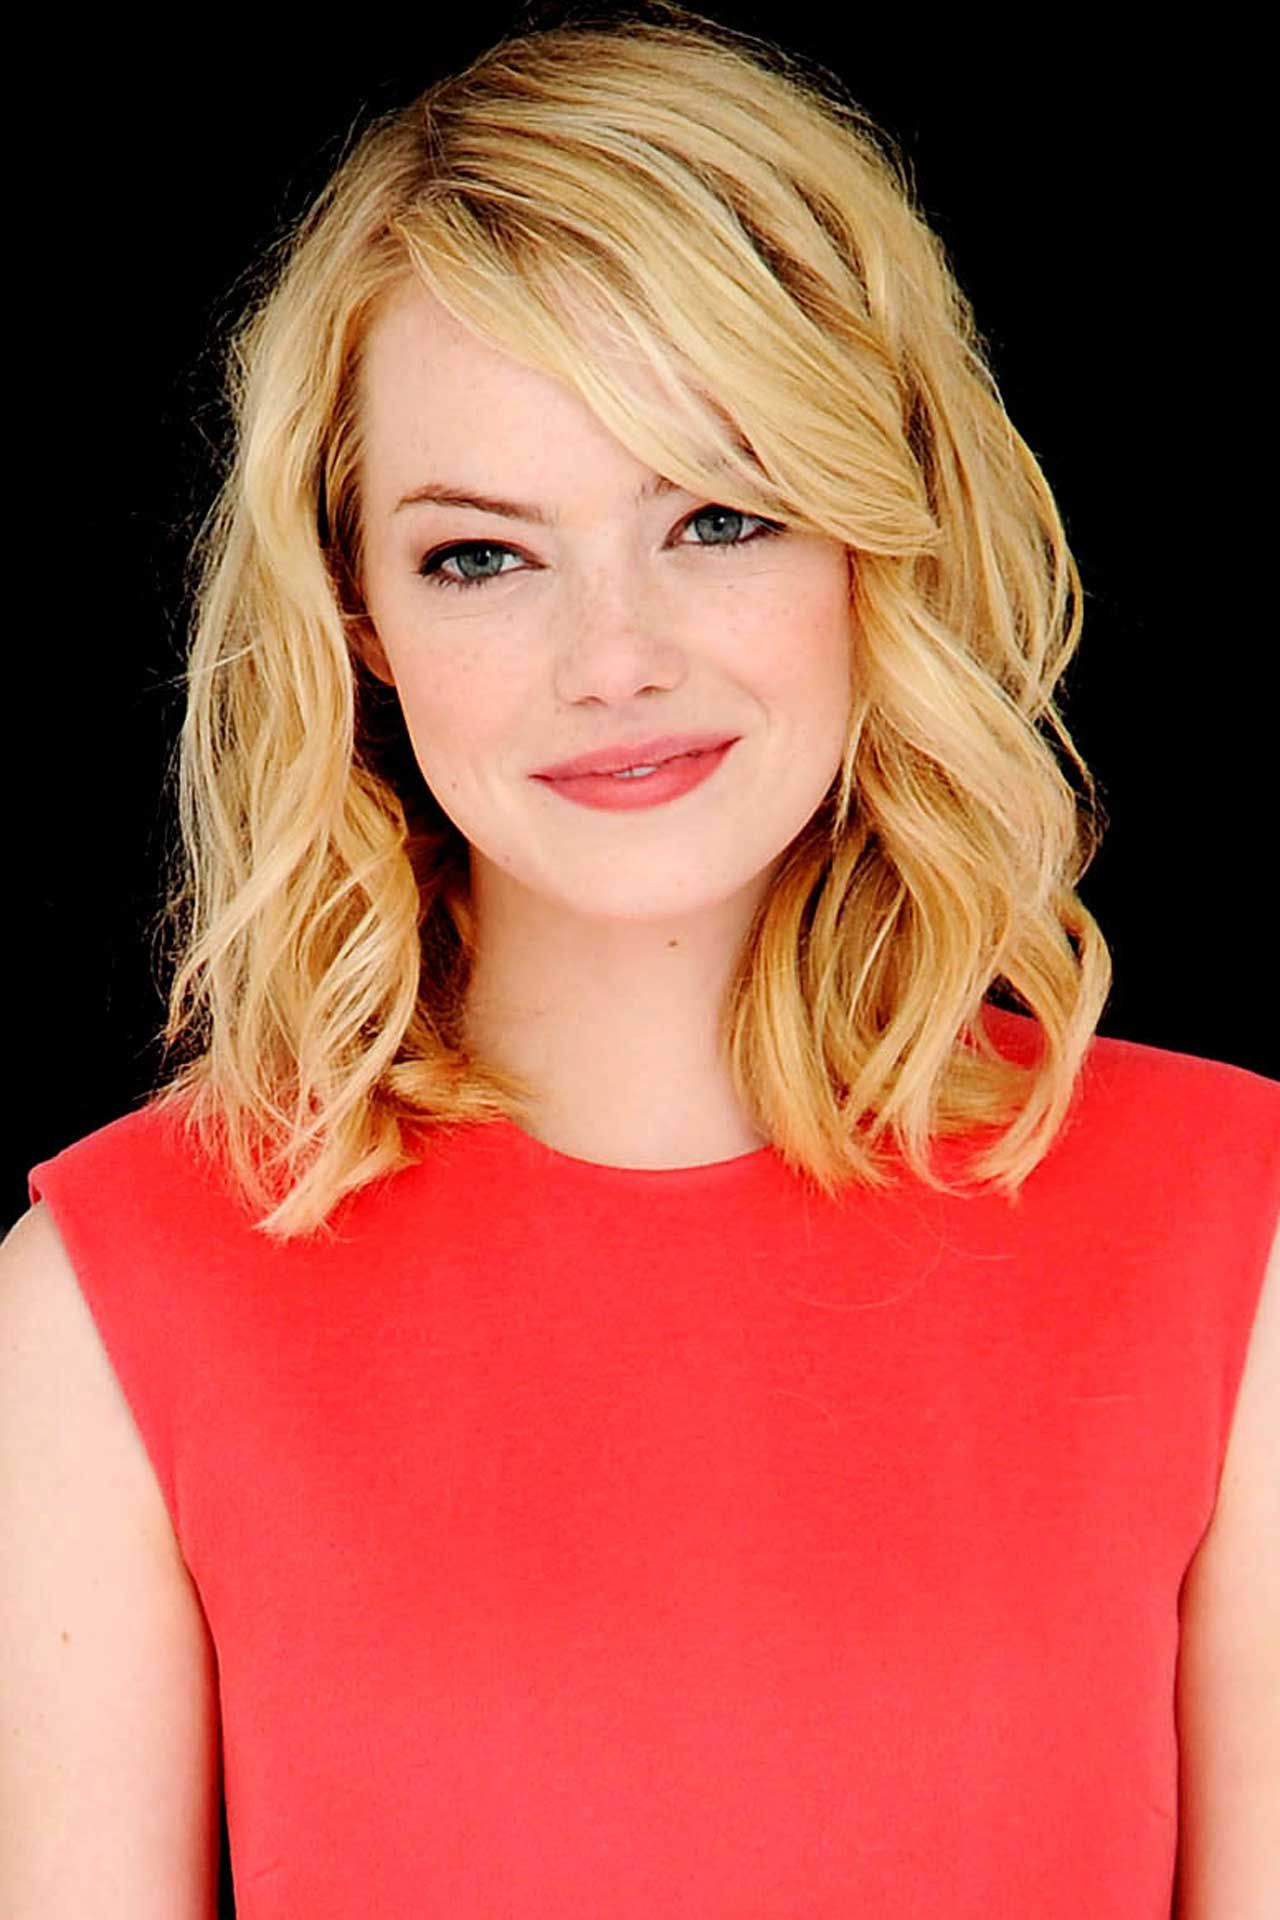 Emma Stone Hair Style File Hairstyles And Colour Vogue Com Uk Hair Styles Emma Stone Hair Hair Lengths